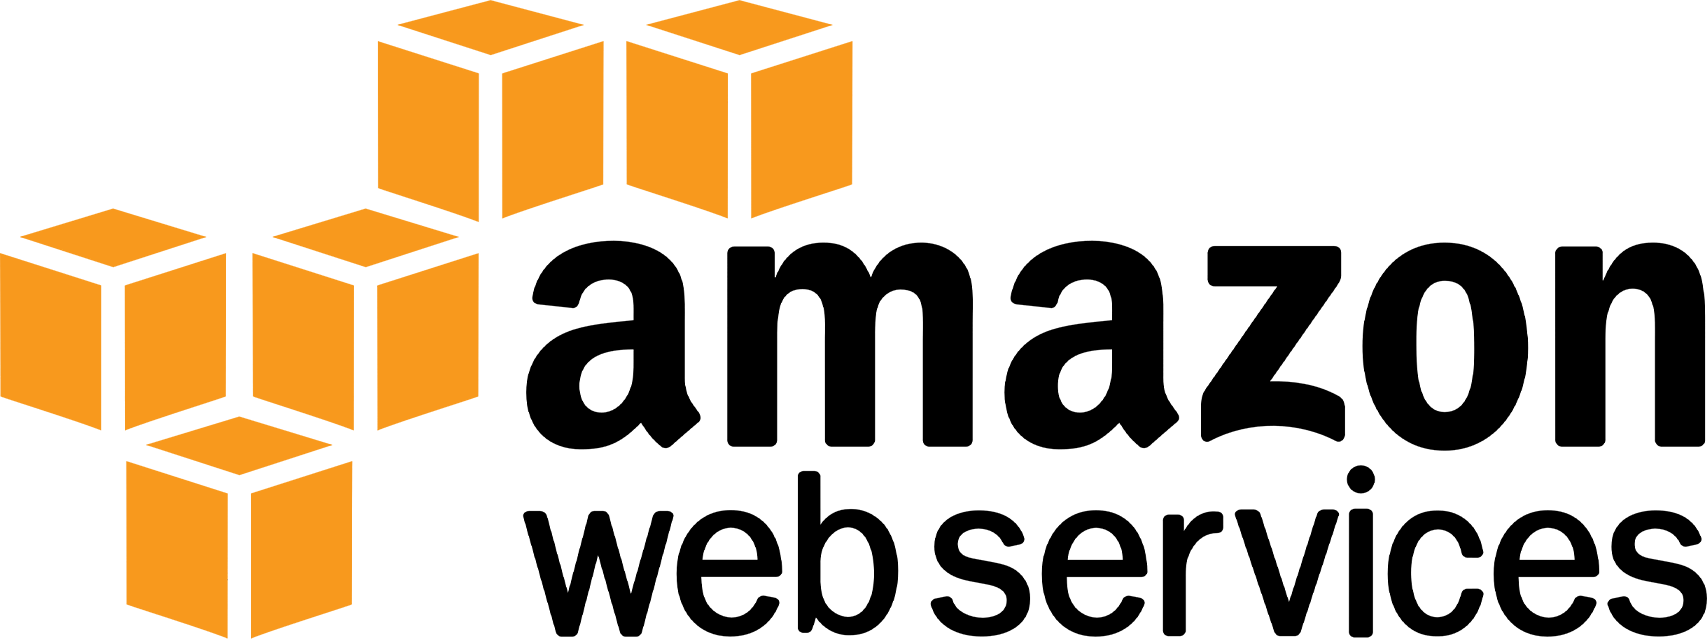 Amazon Web Services Logo pictured - large and colors shown